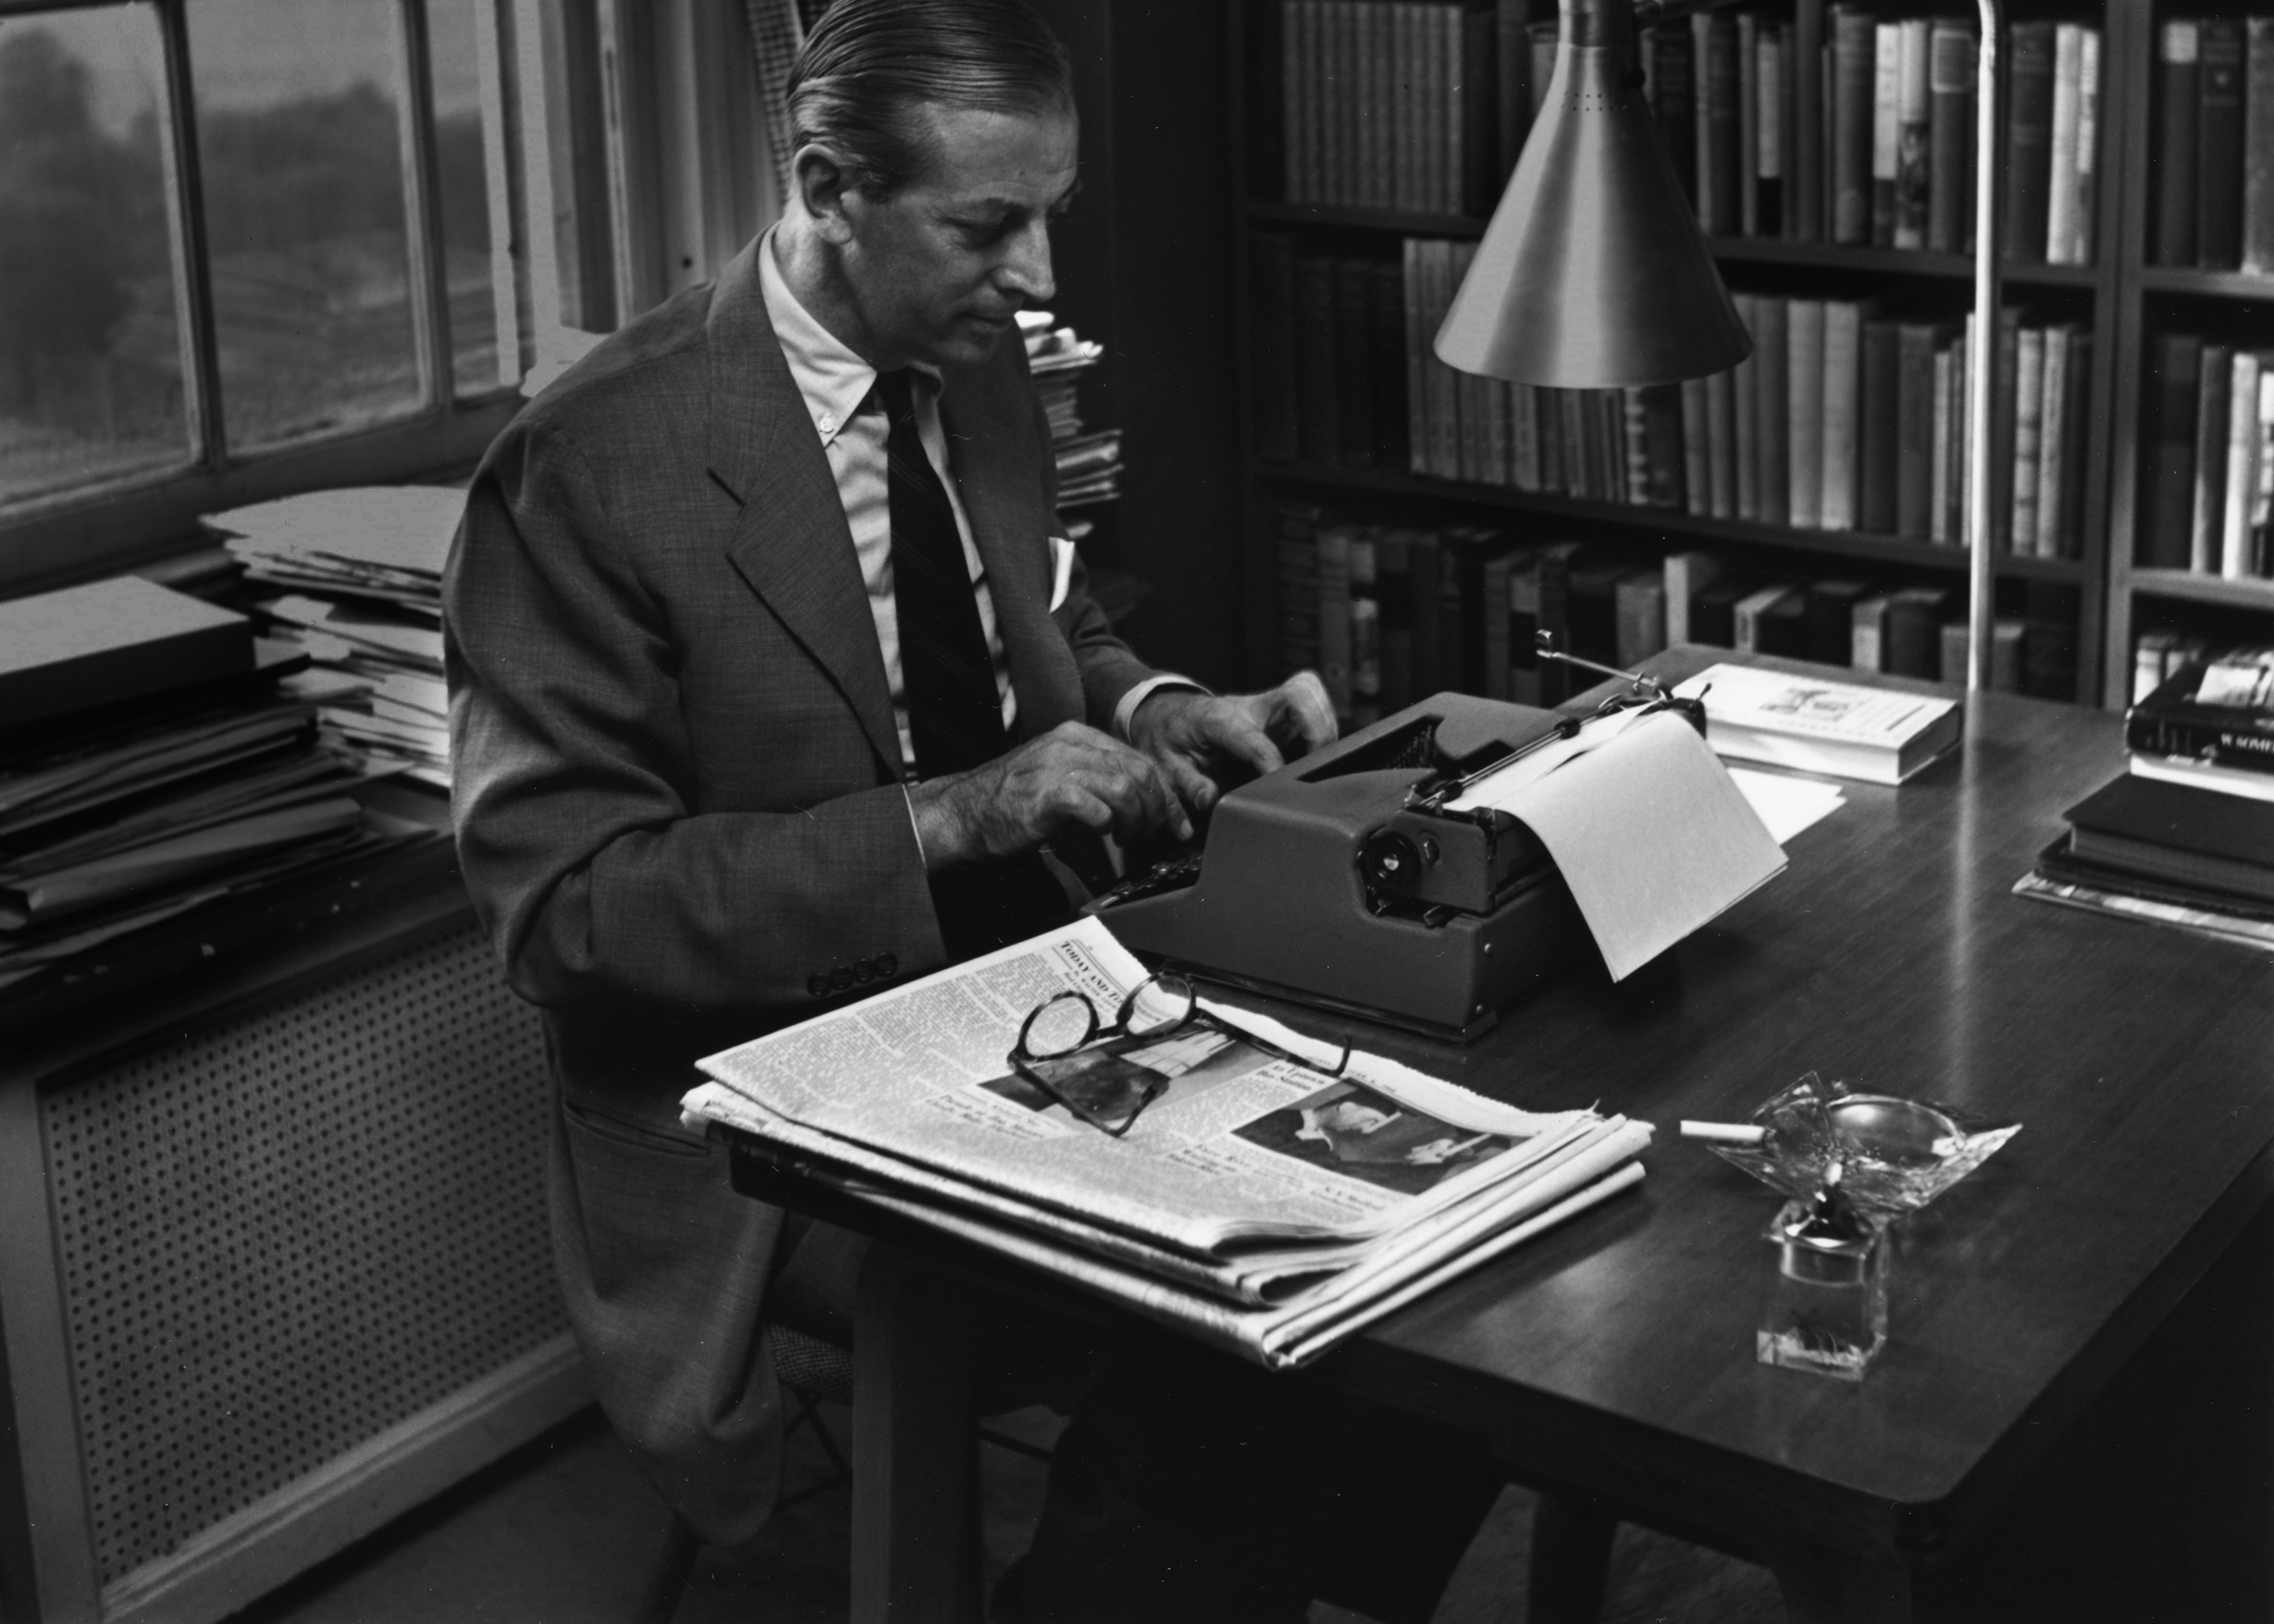 Alistair Cooke at his typewriter, circa 1950 (Photo: Getty Images/Archive Photos)